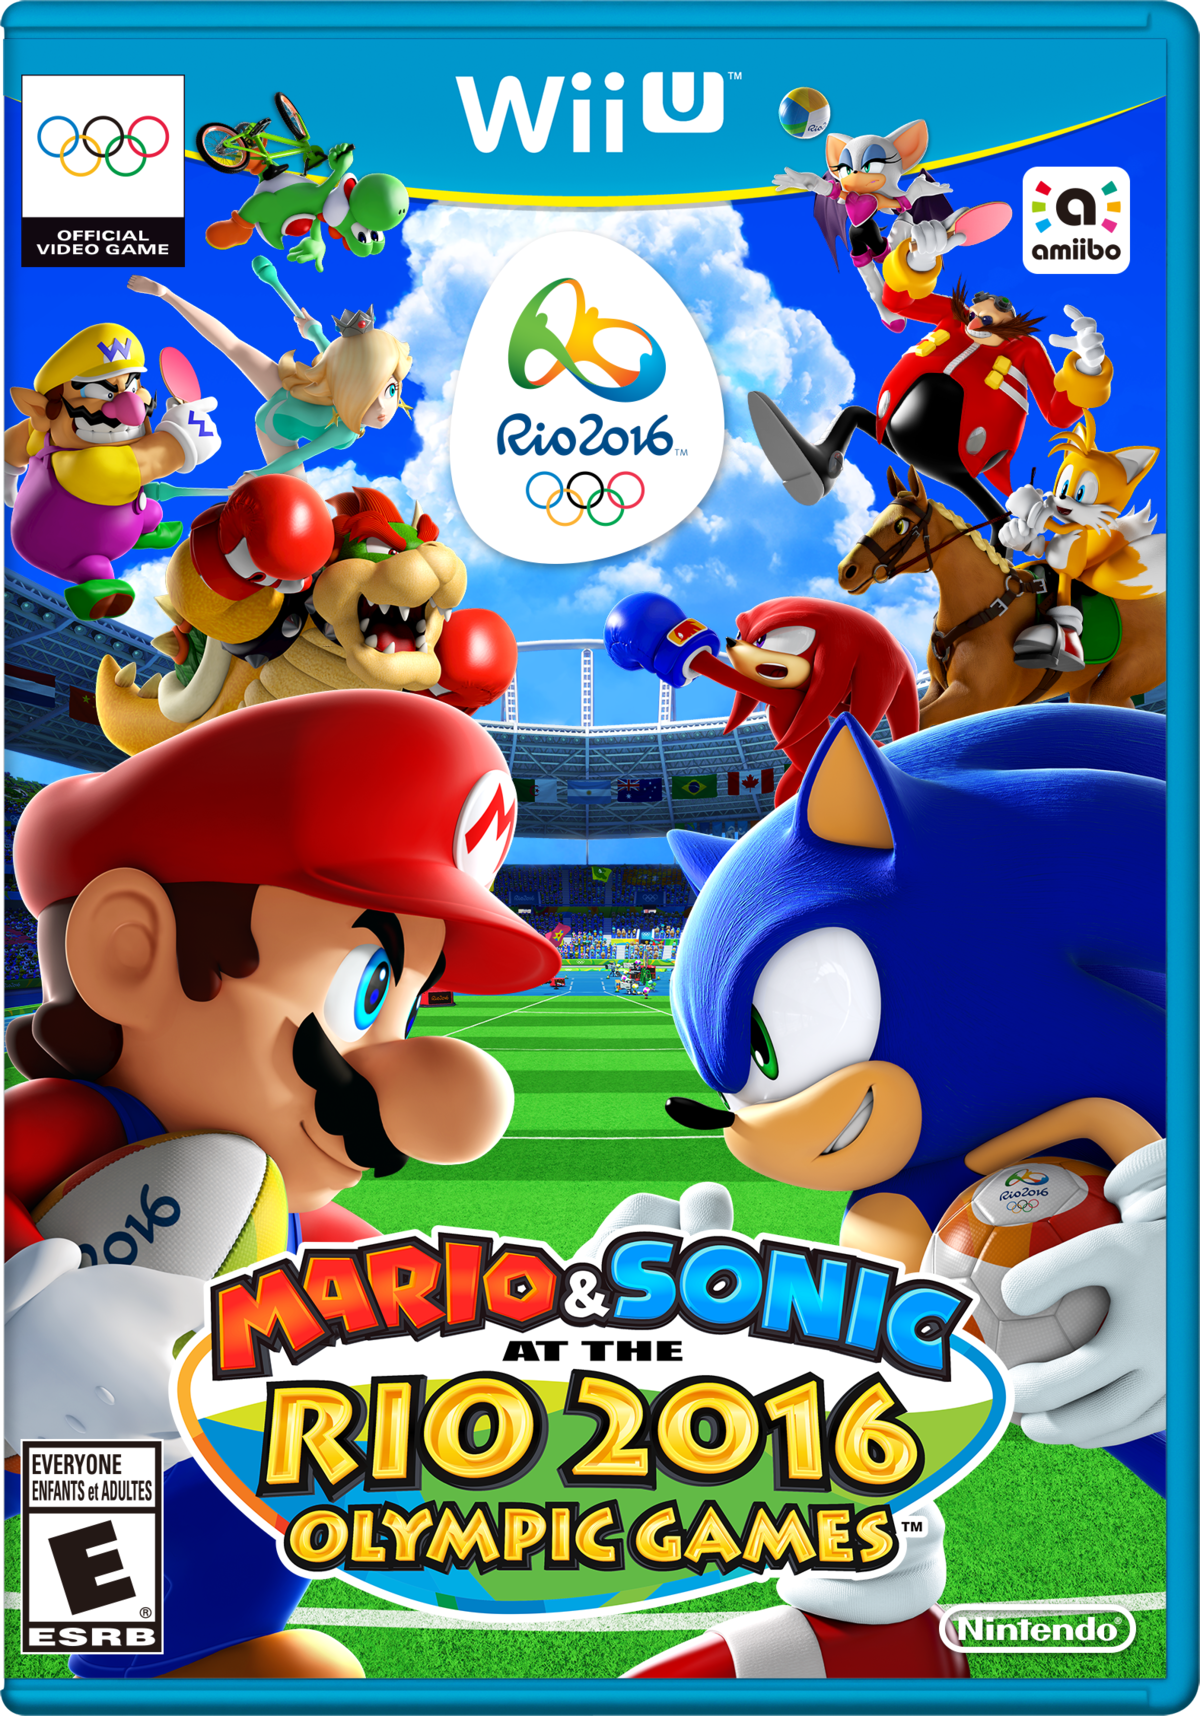 Mario & Sonic at the Rio 2016 Olympic Games (Wii U) - Super